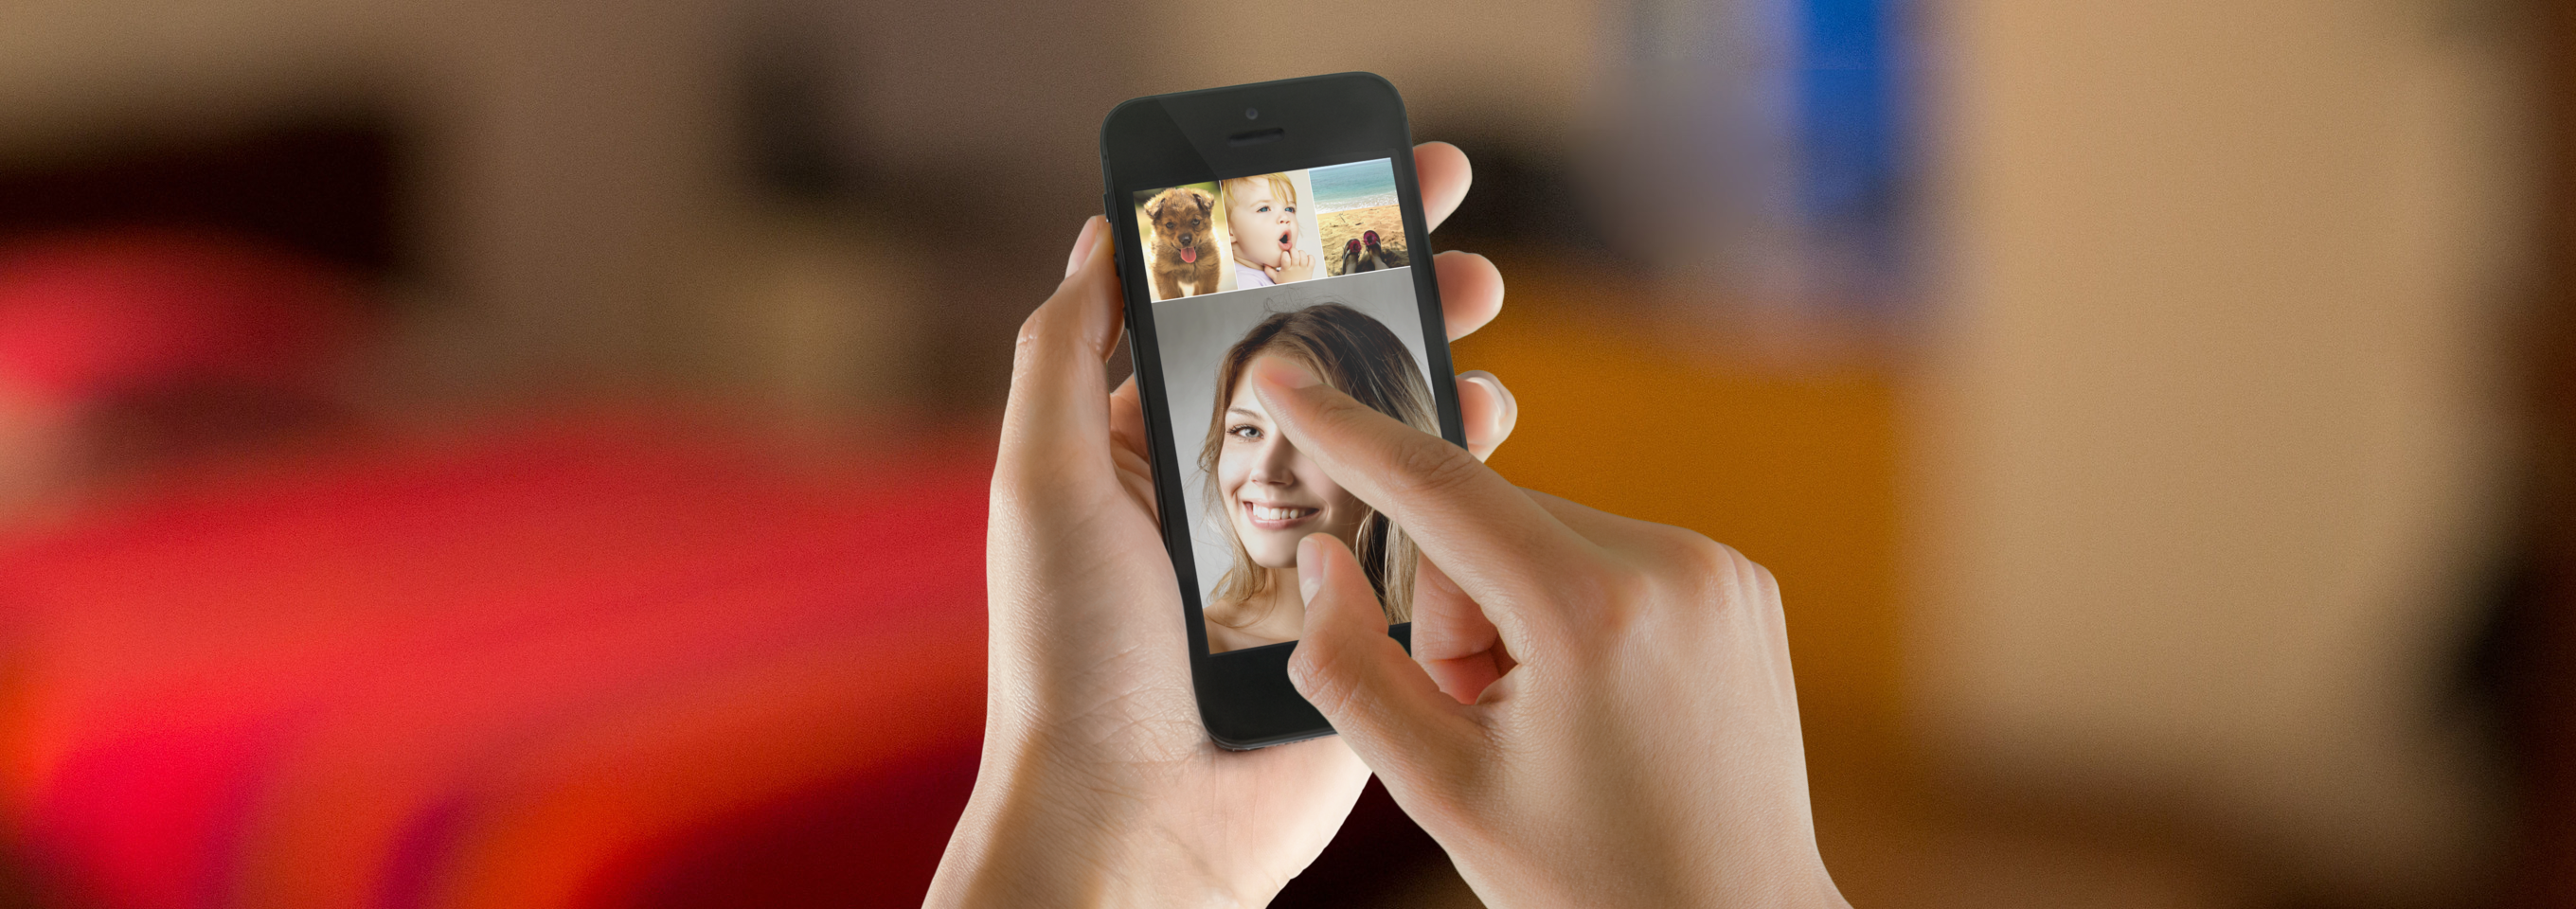 oSnap Wants to Simplify Selfies